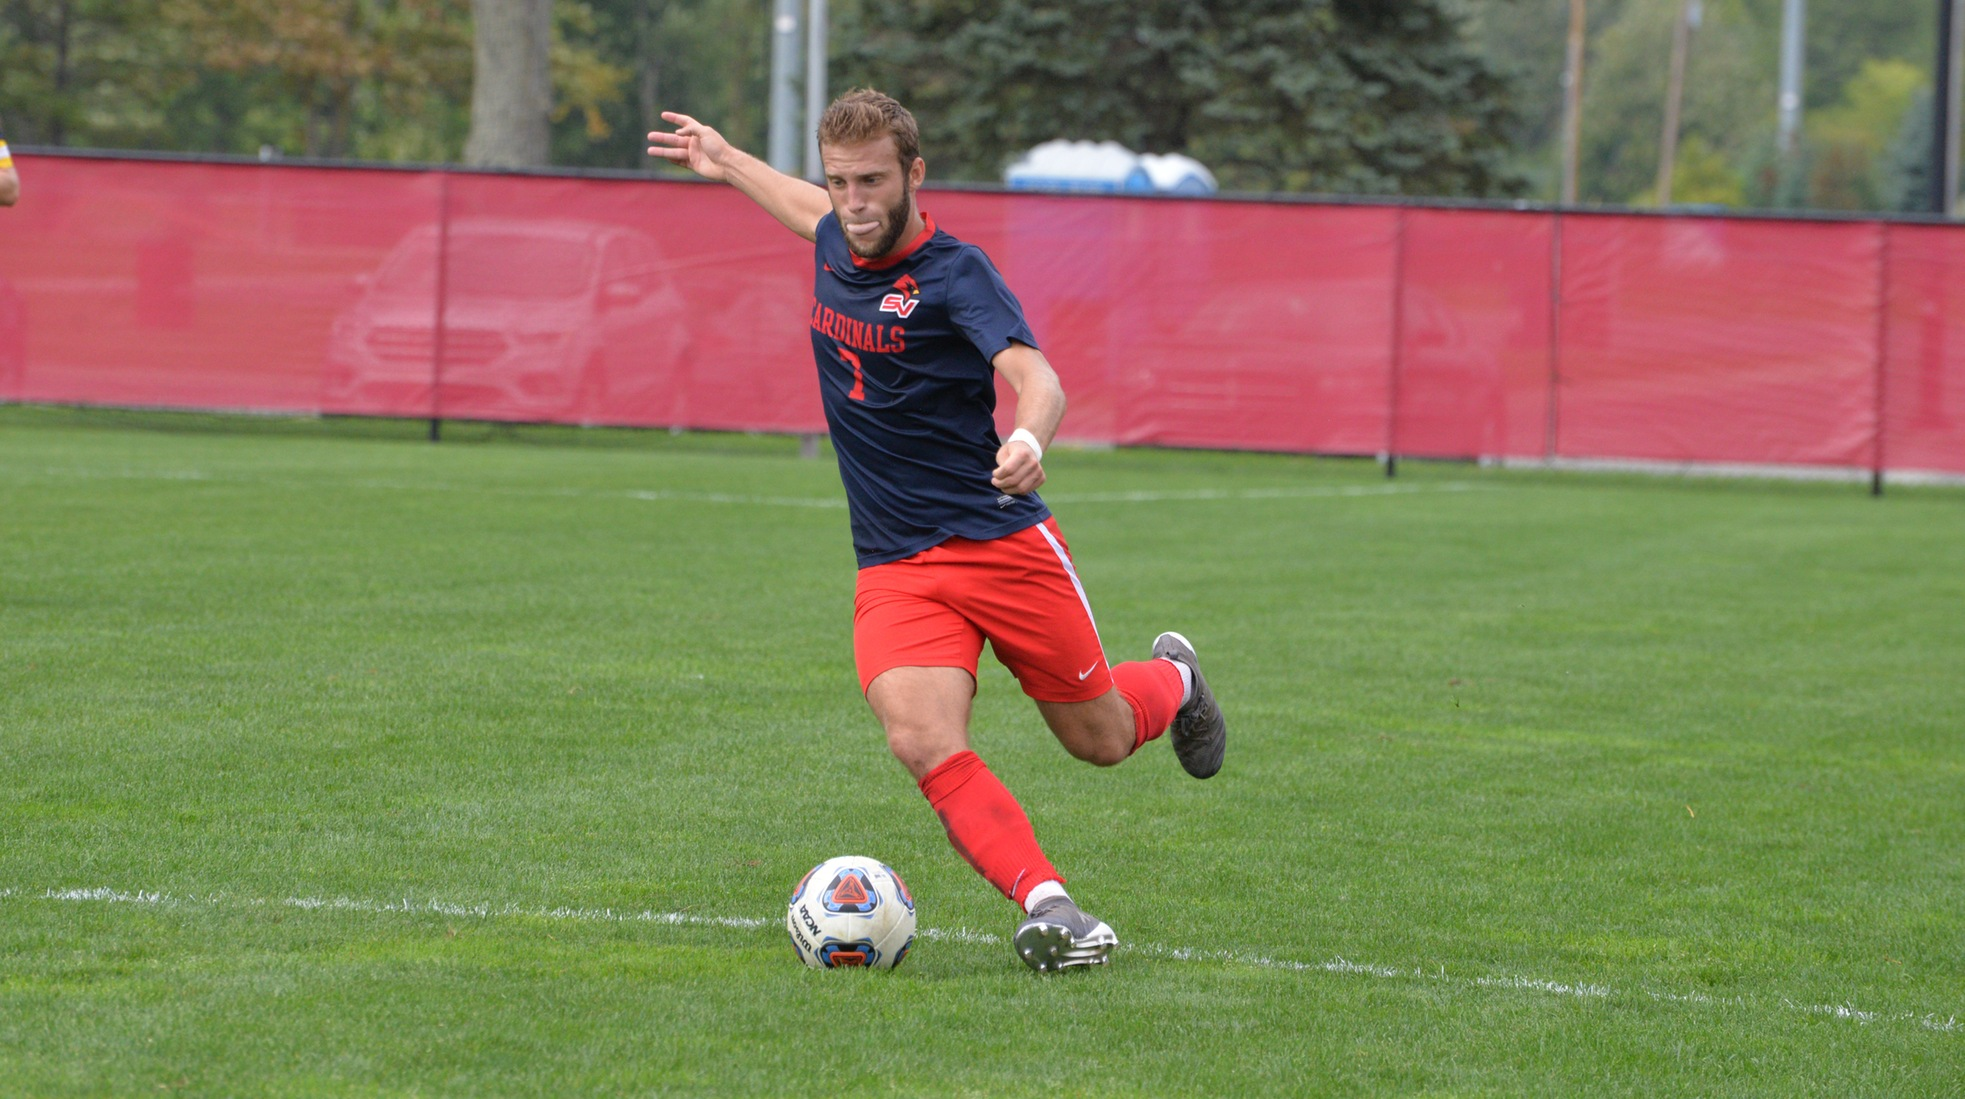 Cards claim 2-1 victory over Eagles in Sunday GLIAC action